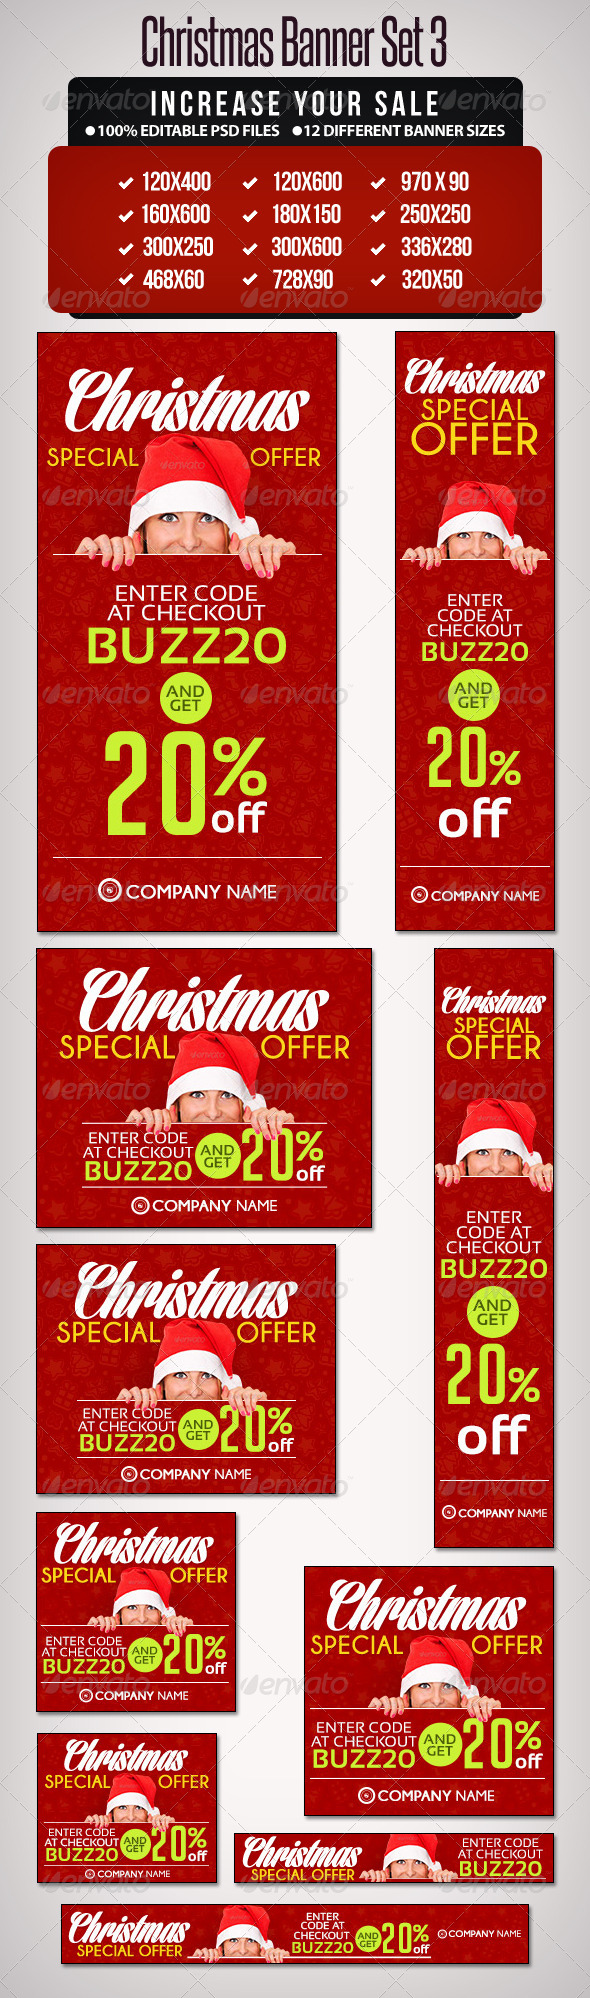 GraphicRiver Christmas Banner Set 3 12 Sizes 6318069